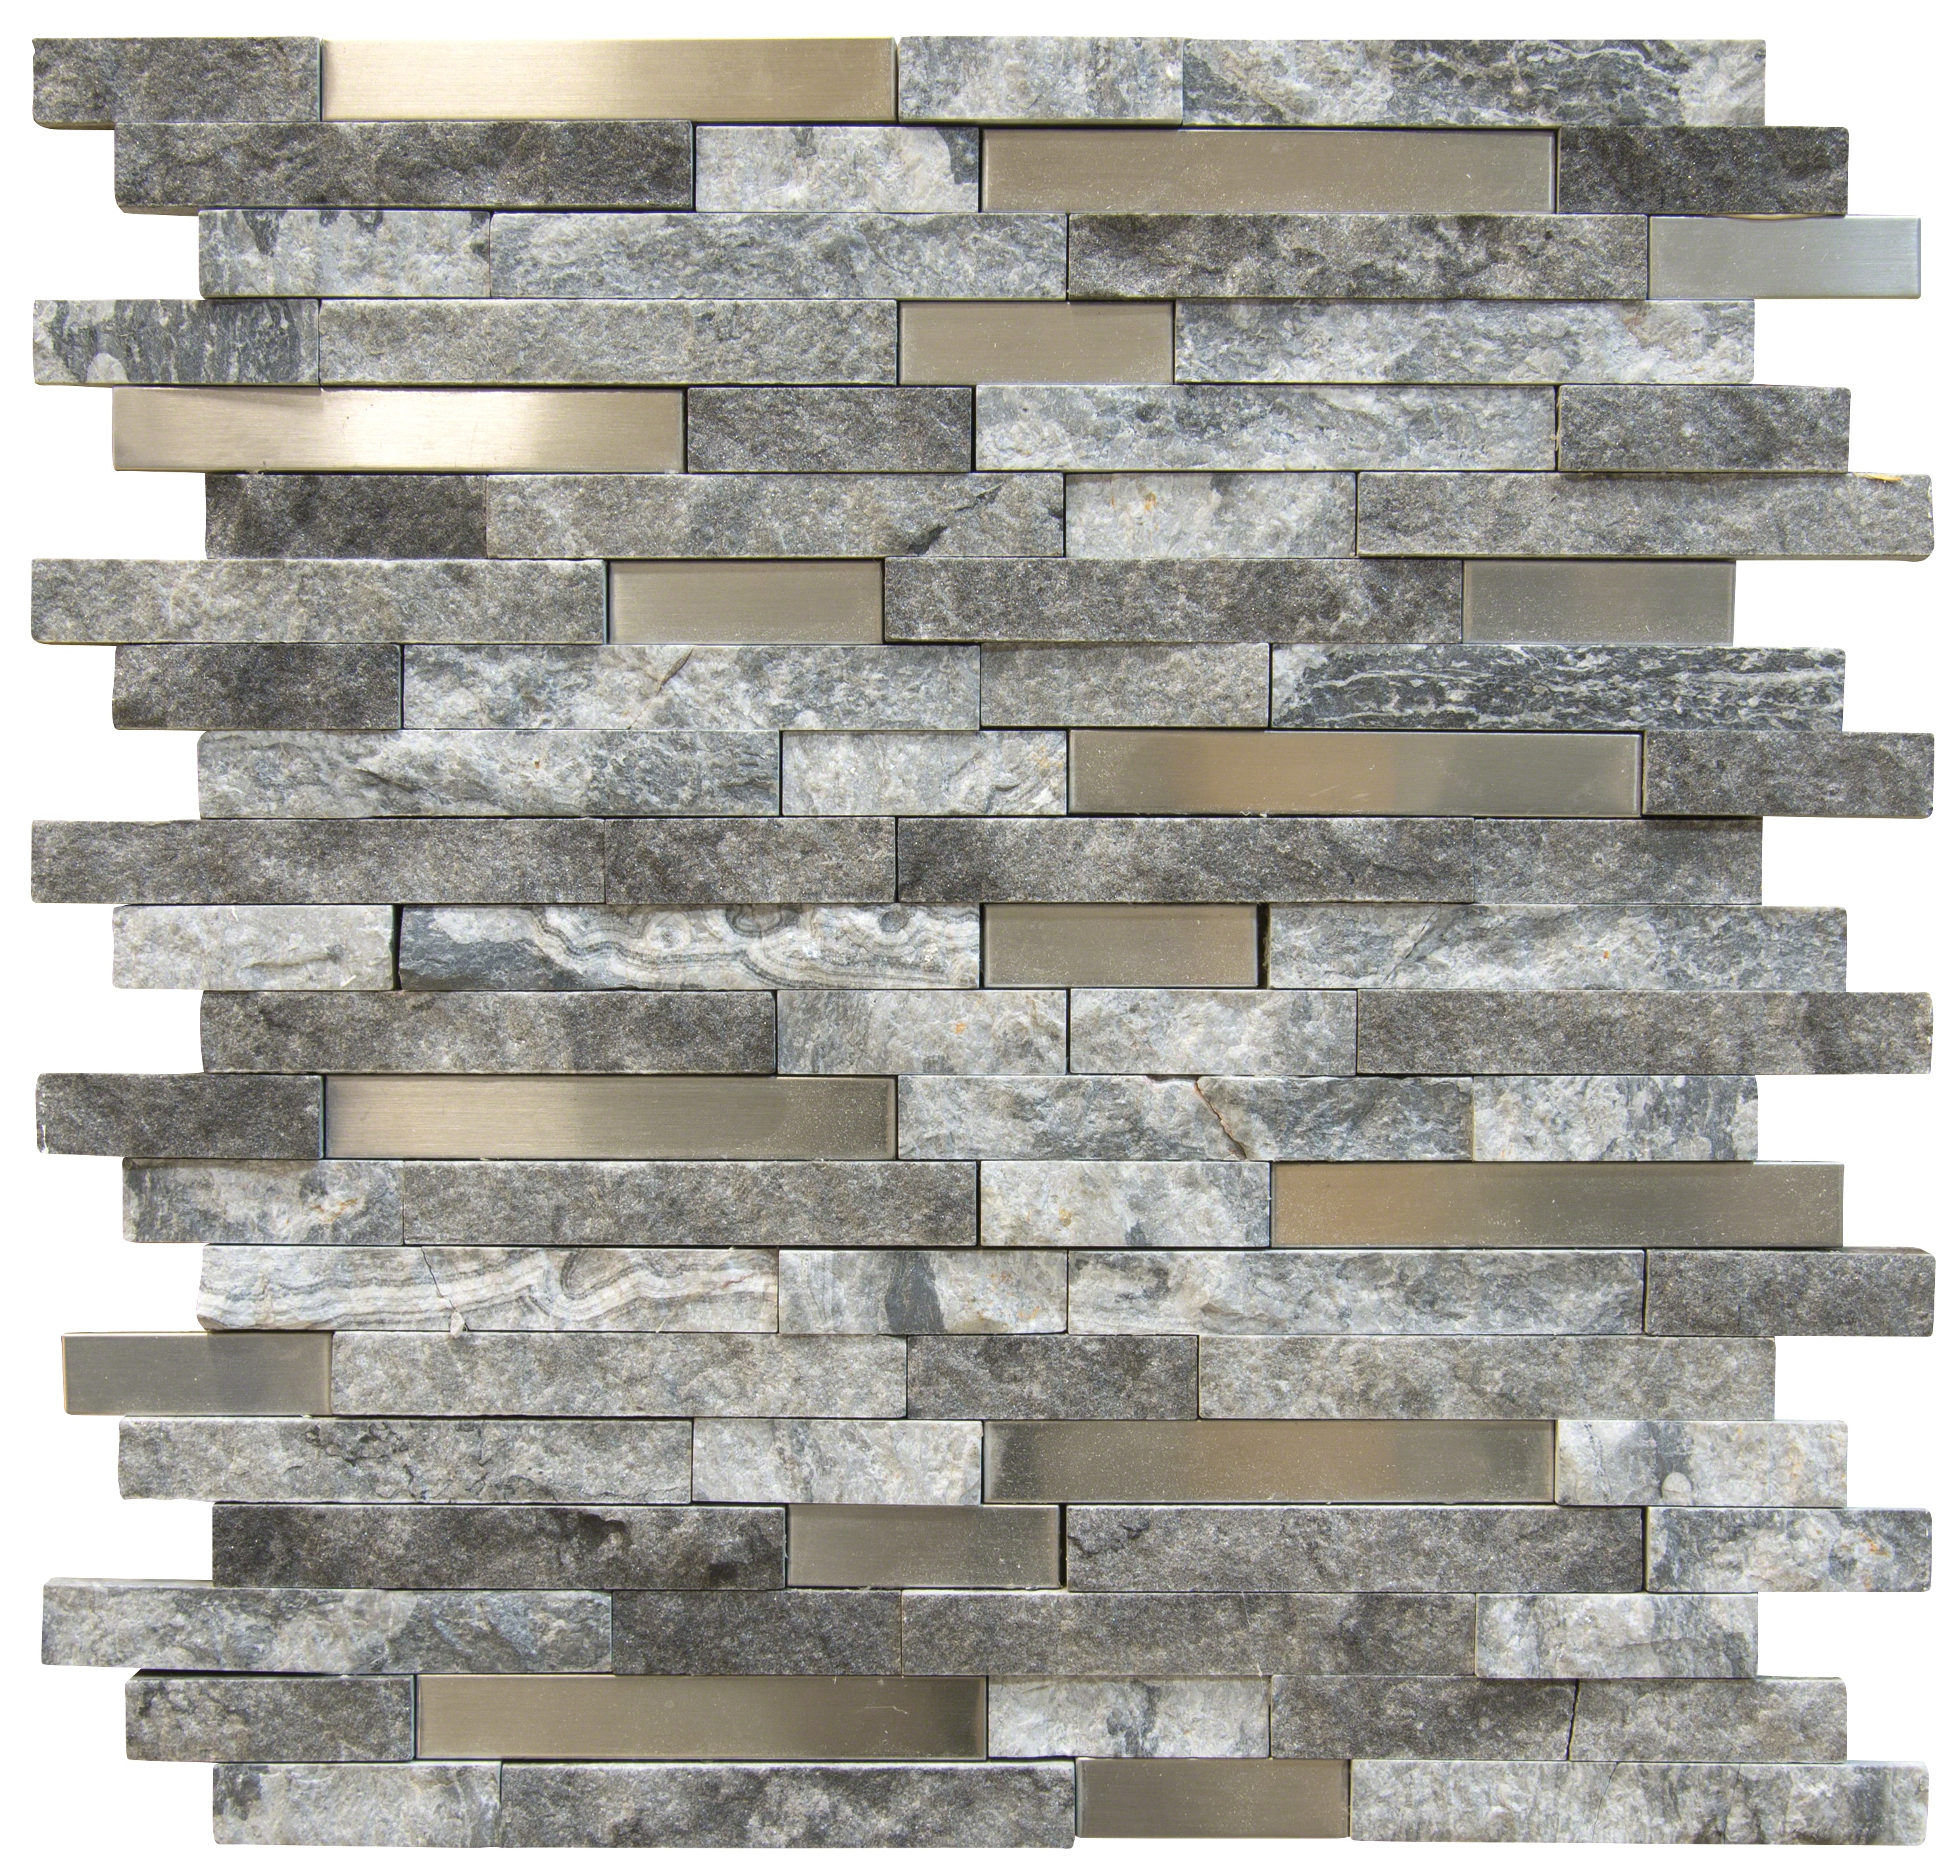 ms international mosaic tile eclipse interlocking 8mm pattern